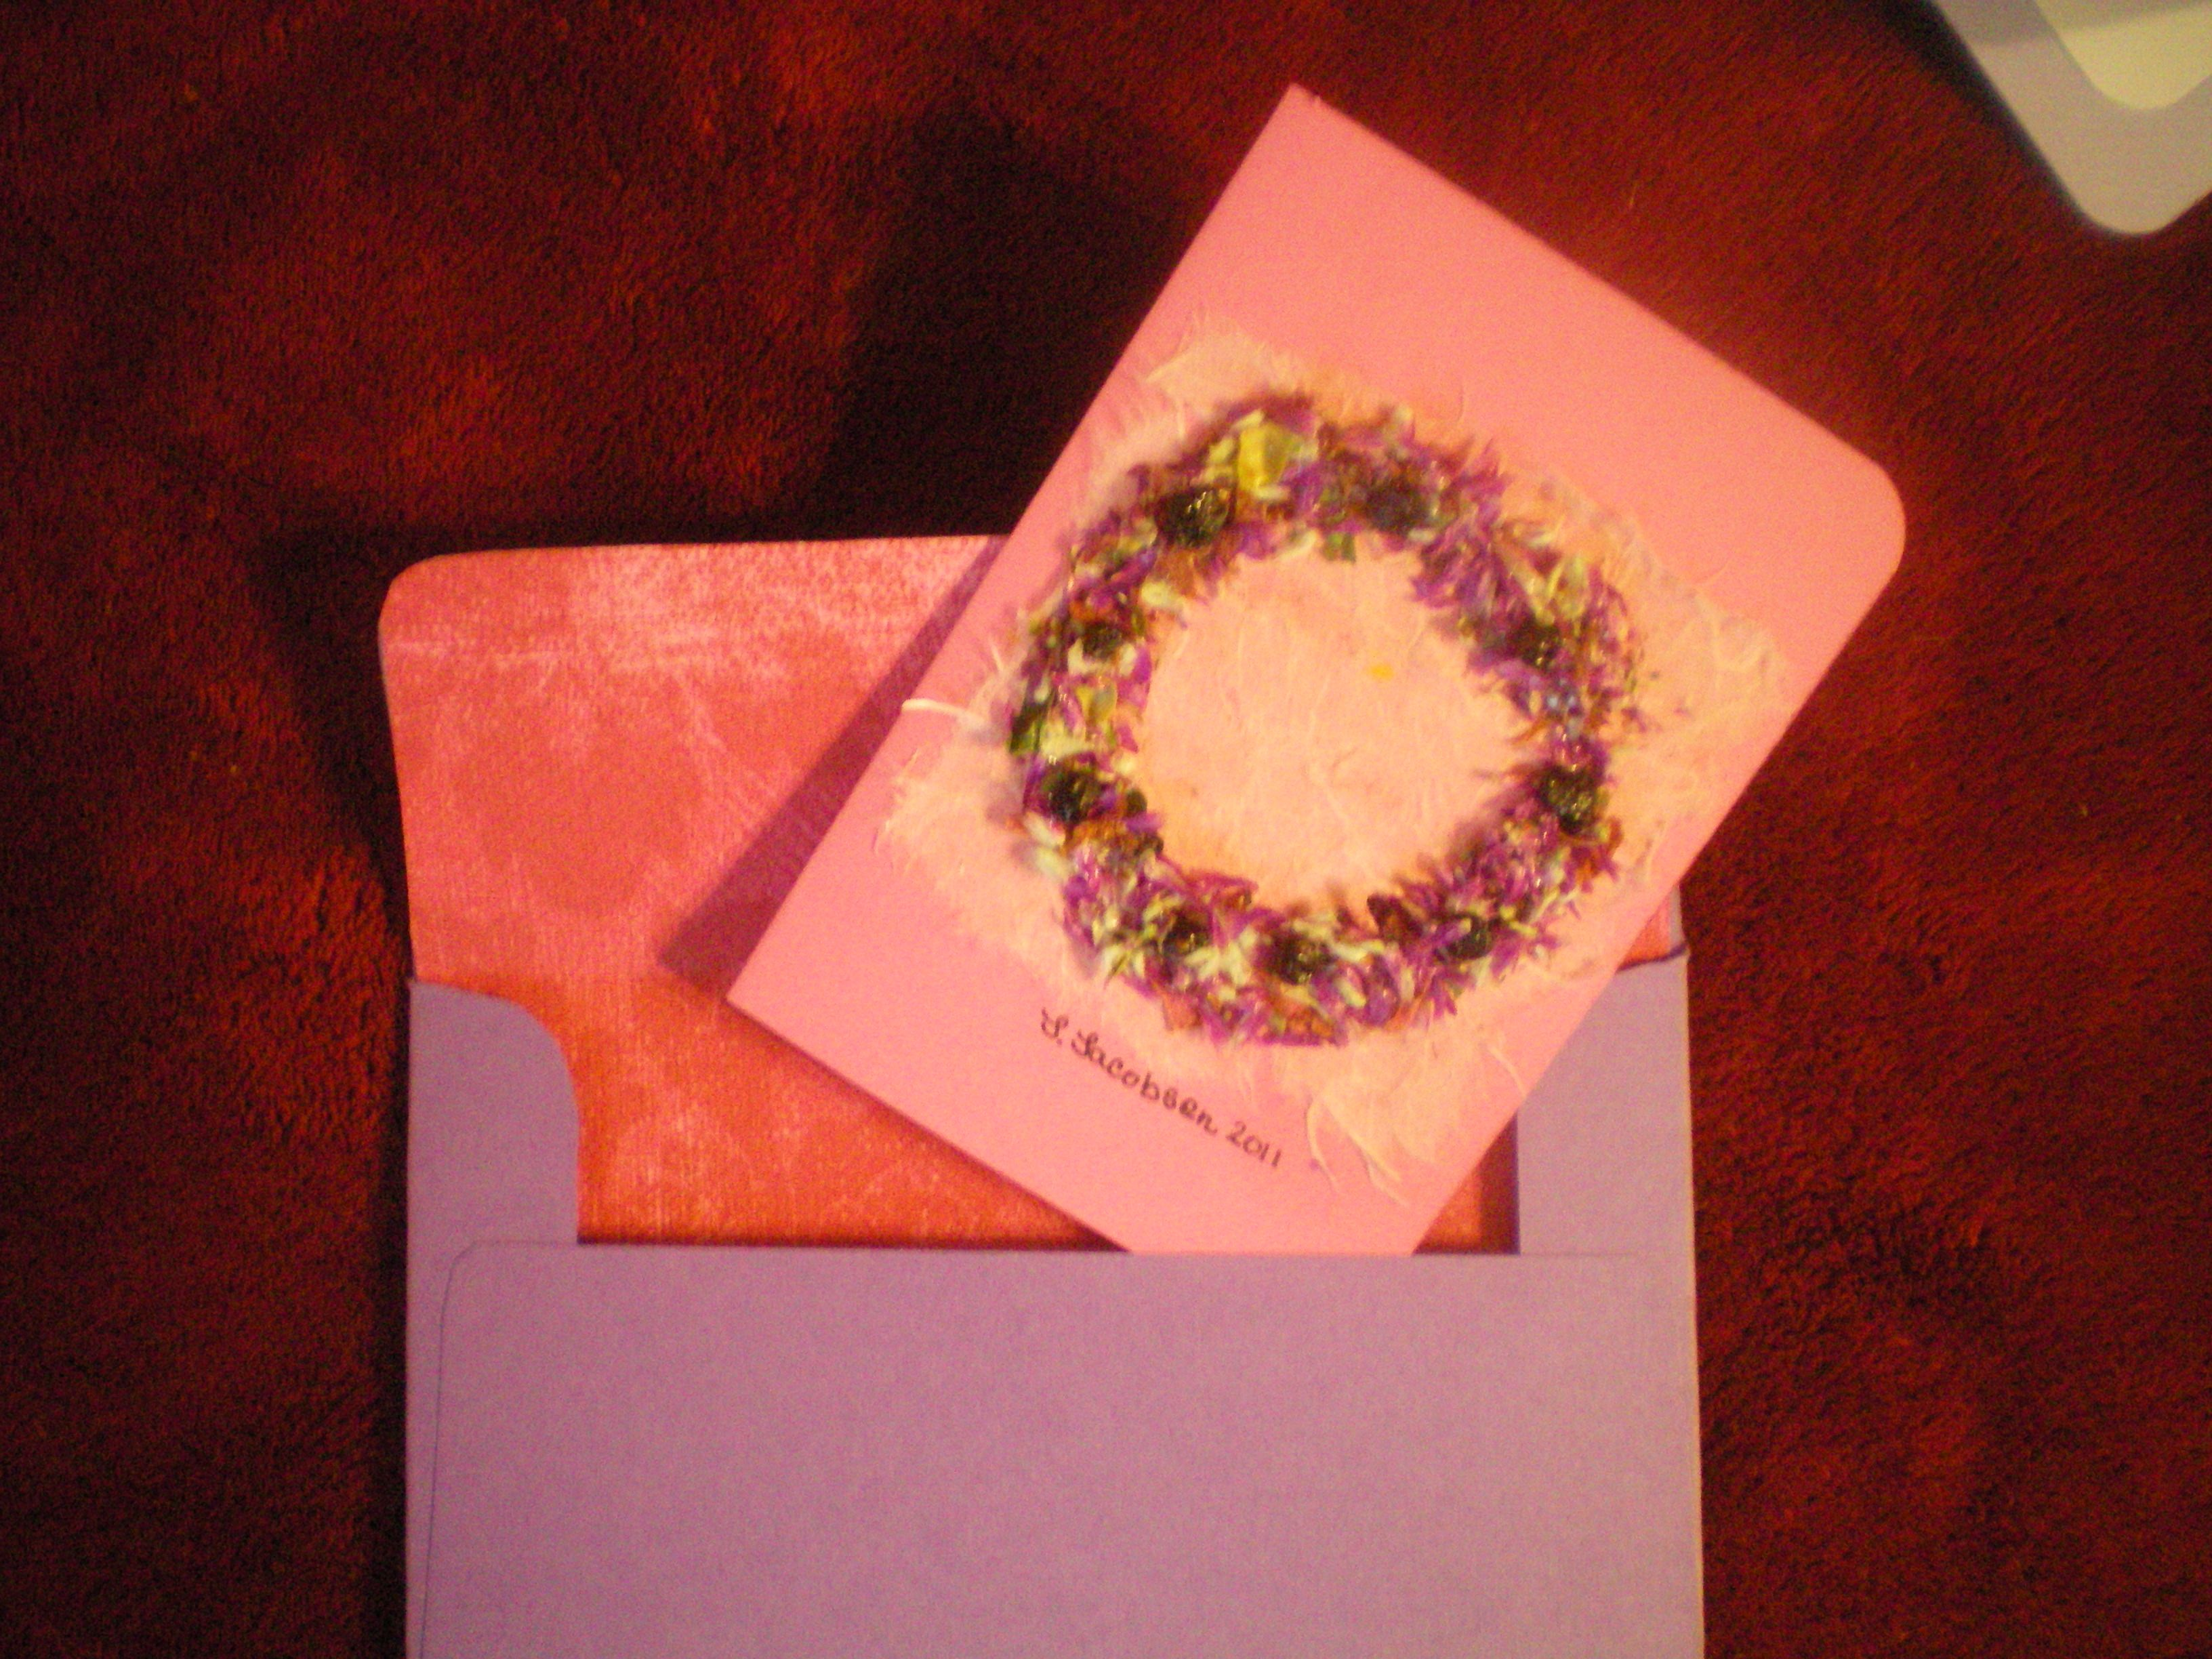 How to scrapbook dried flowers - Card Envelope I Made From My Homemade Paper Dried Flowers Cardstock And Scrapbook